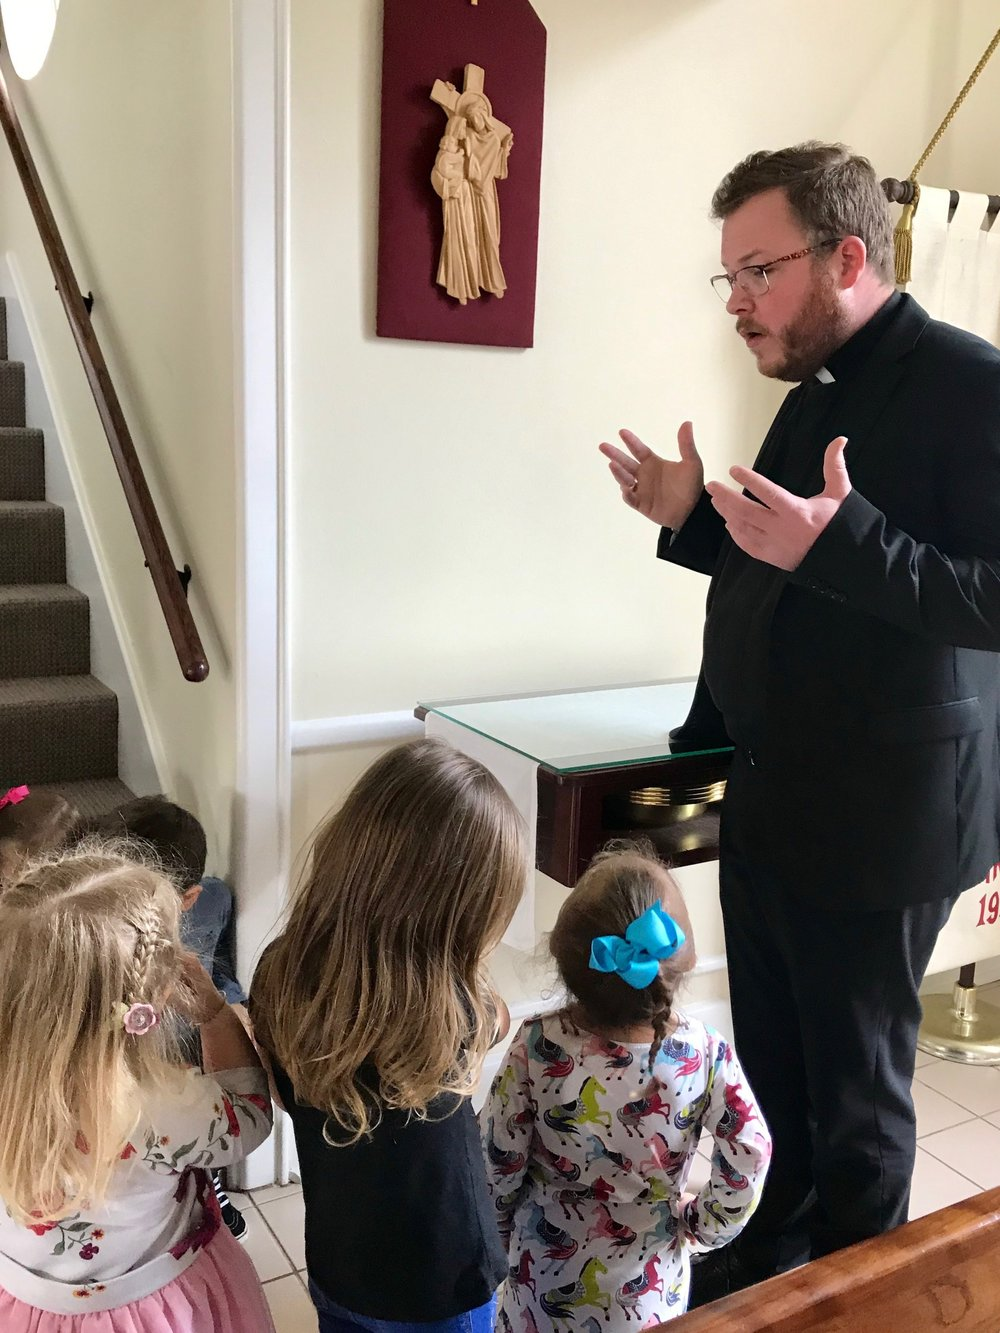 Learning about Lent - and the Stations of the Cross. Fr. Cooper Morelock helps the children understand the God's great love for us by taking them on a children's journey through Jesus' last moments on Earth.